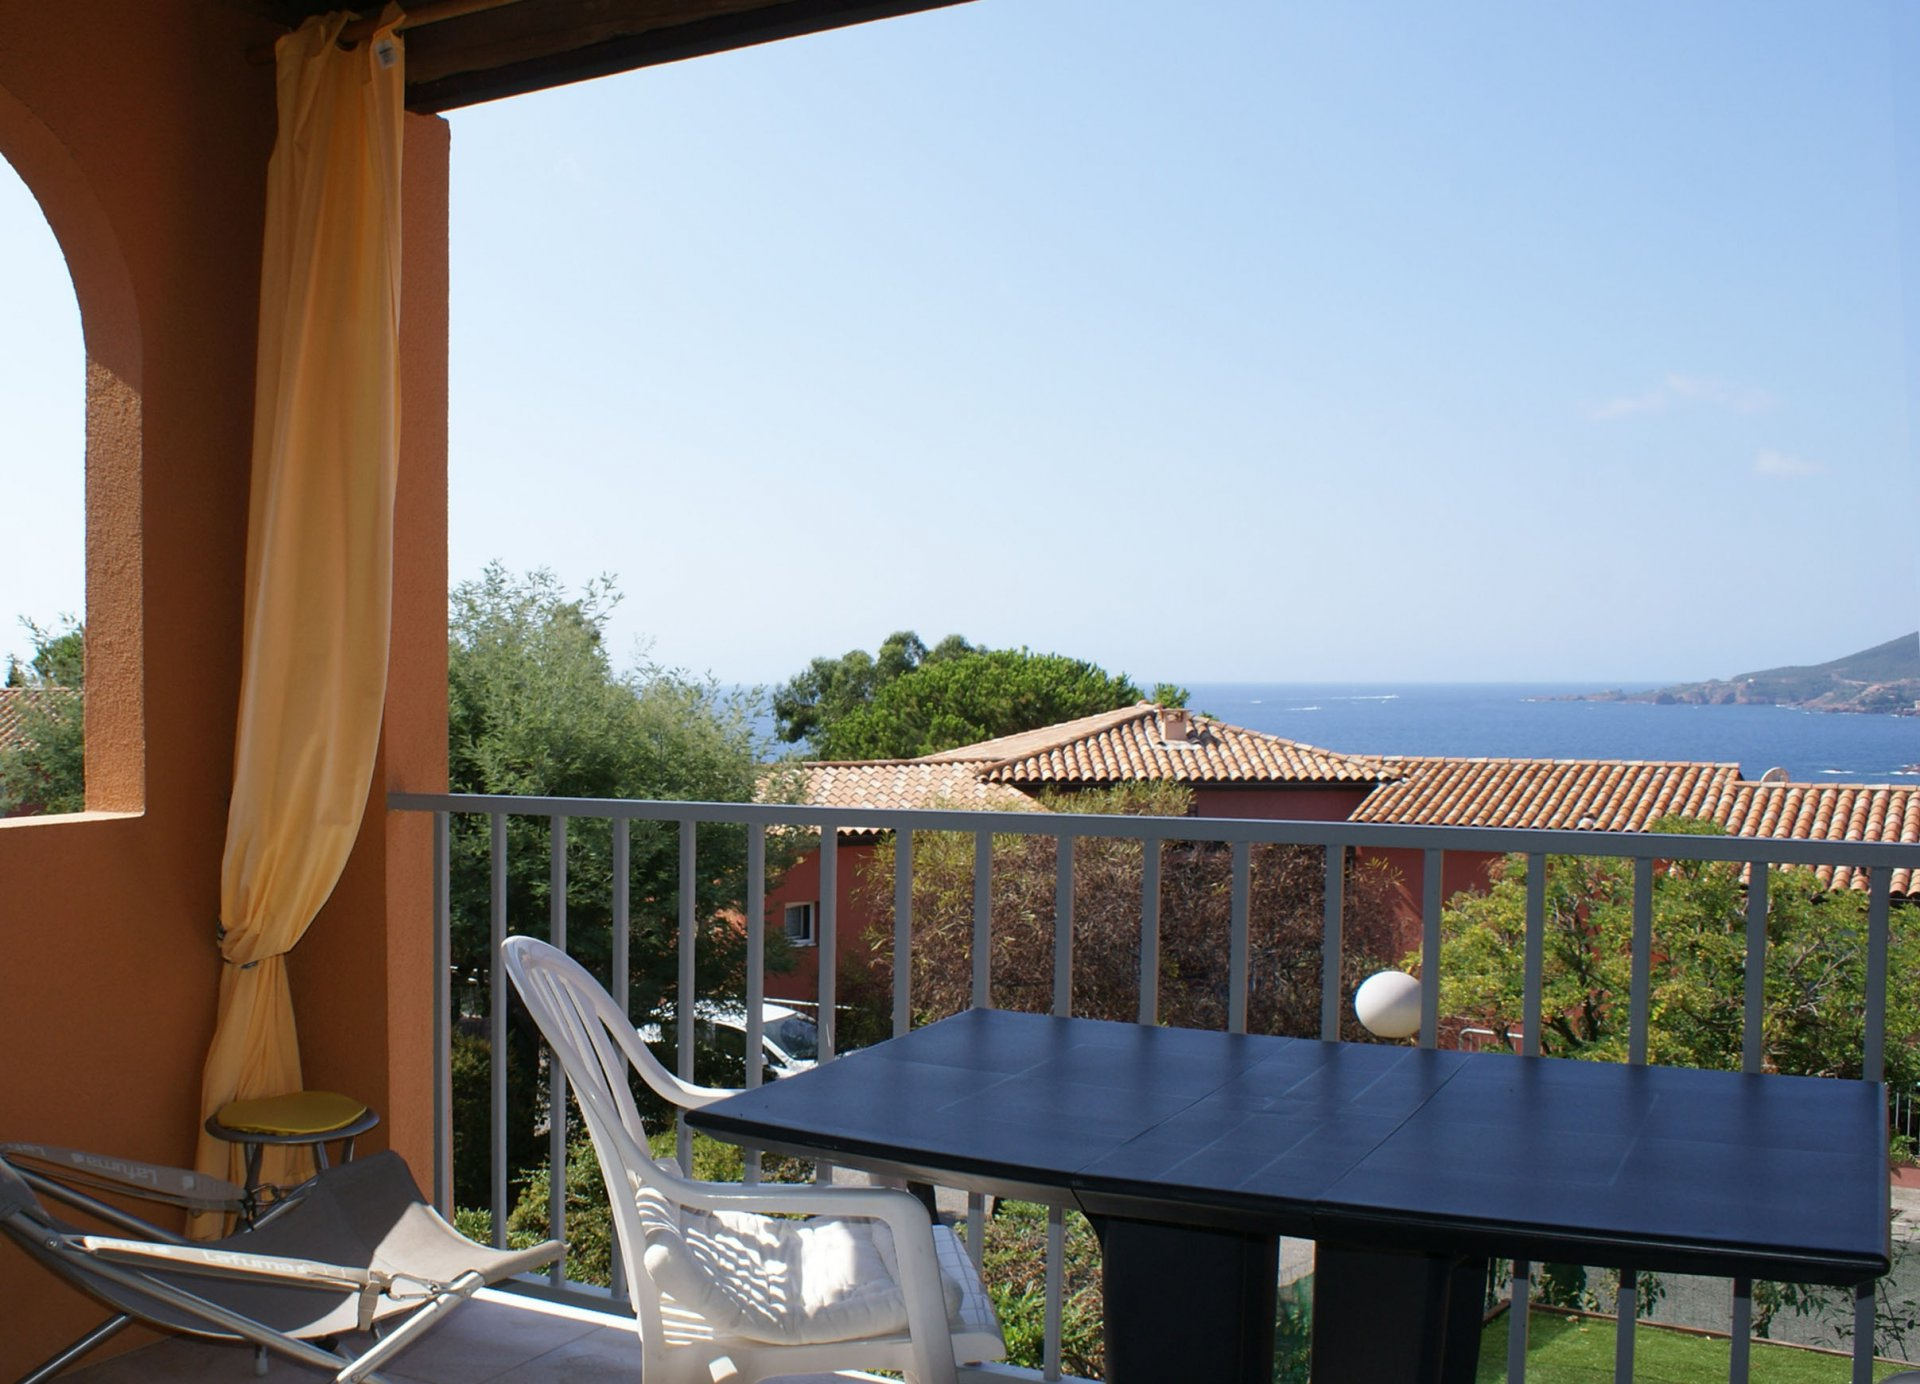 2 bed rooms apartment (4 sleeps) 2 terraces, garden, sea view  * SAV 4041*